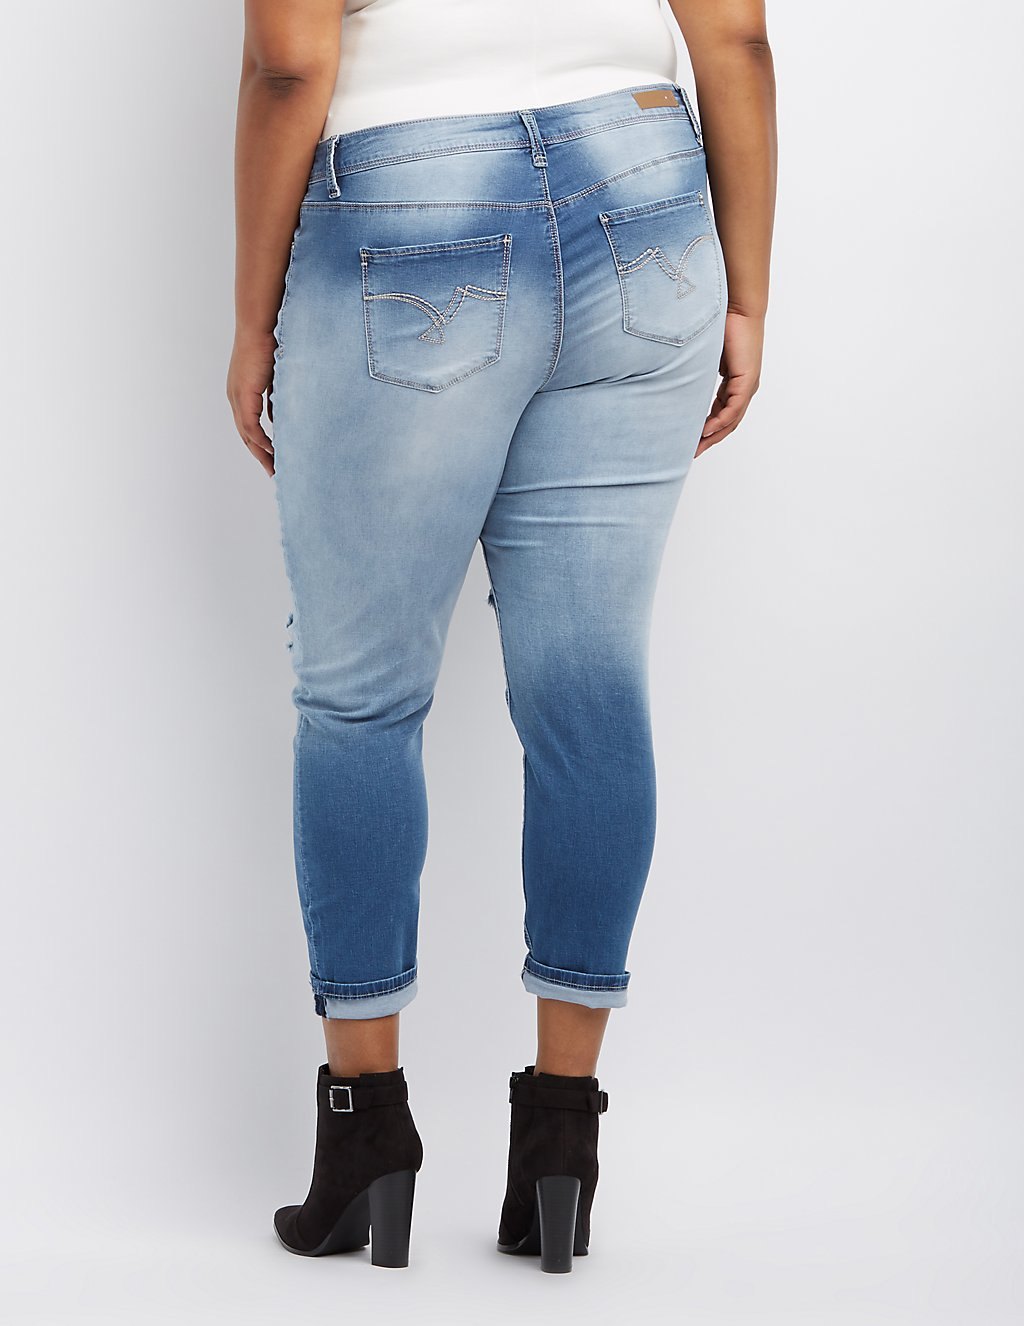 Plus Size Ombre Destroyed Skinny Jeans | Charlotte Russe